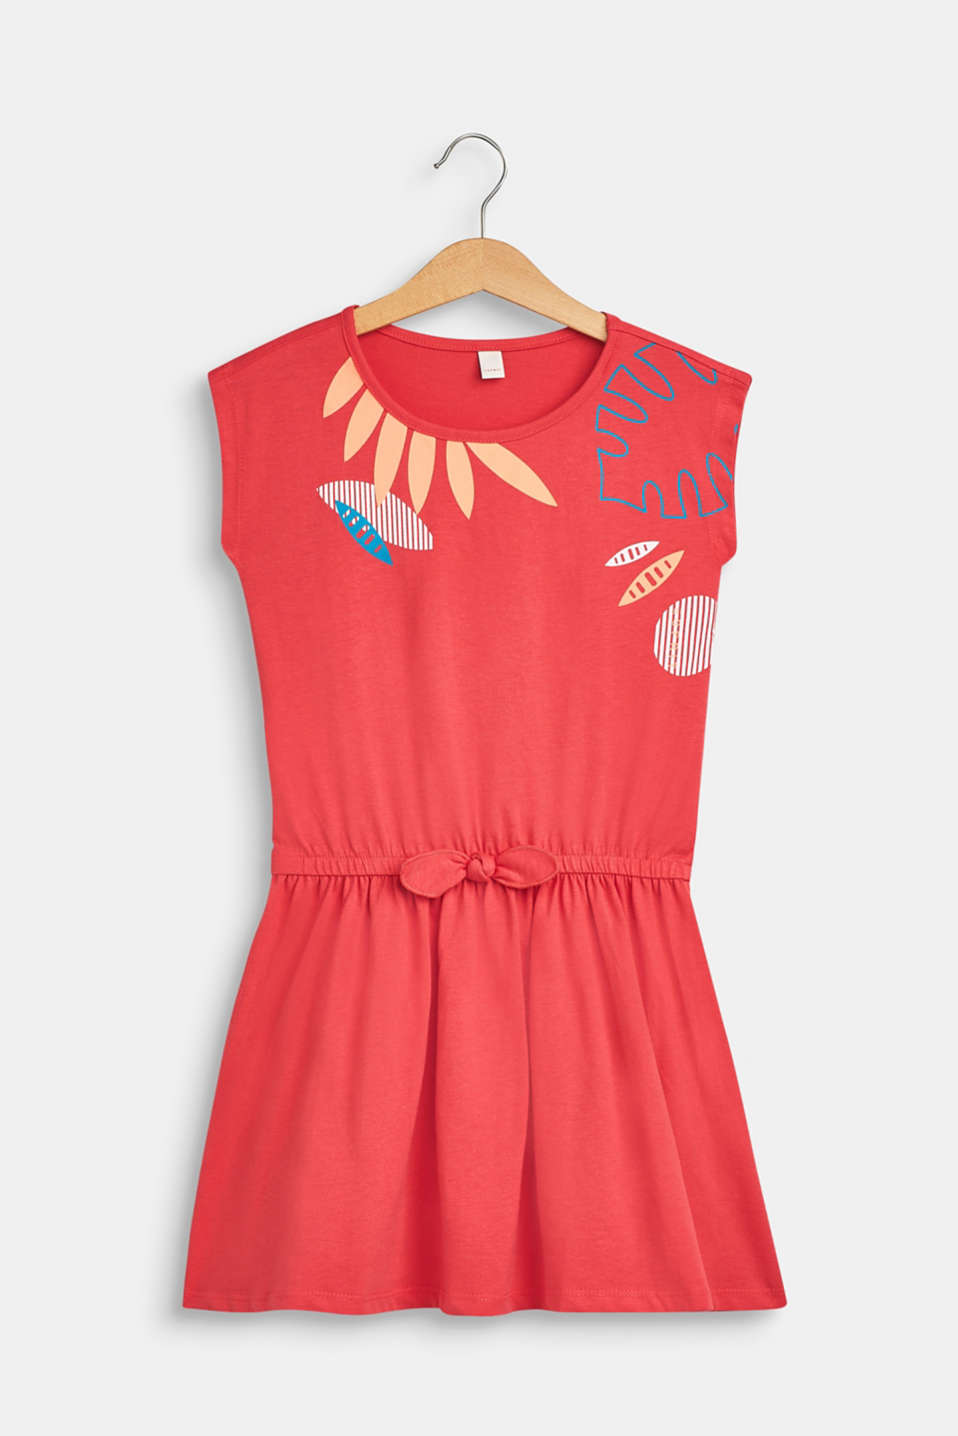 Esprit - Jersey dress with a tropical print, 100% cotton